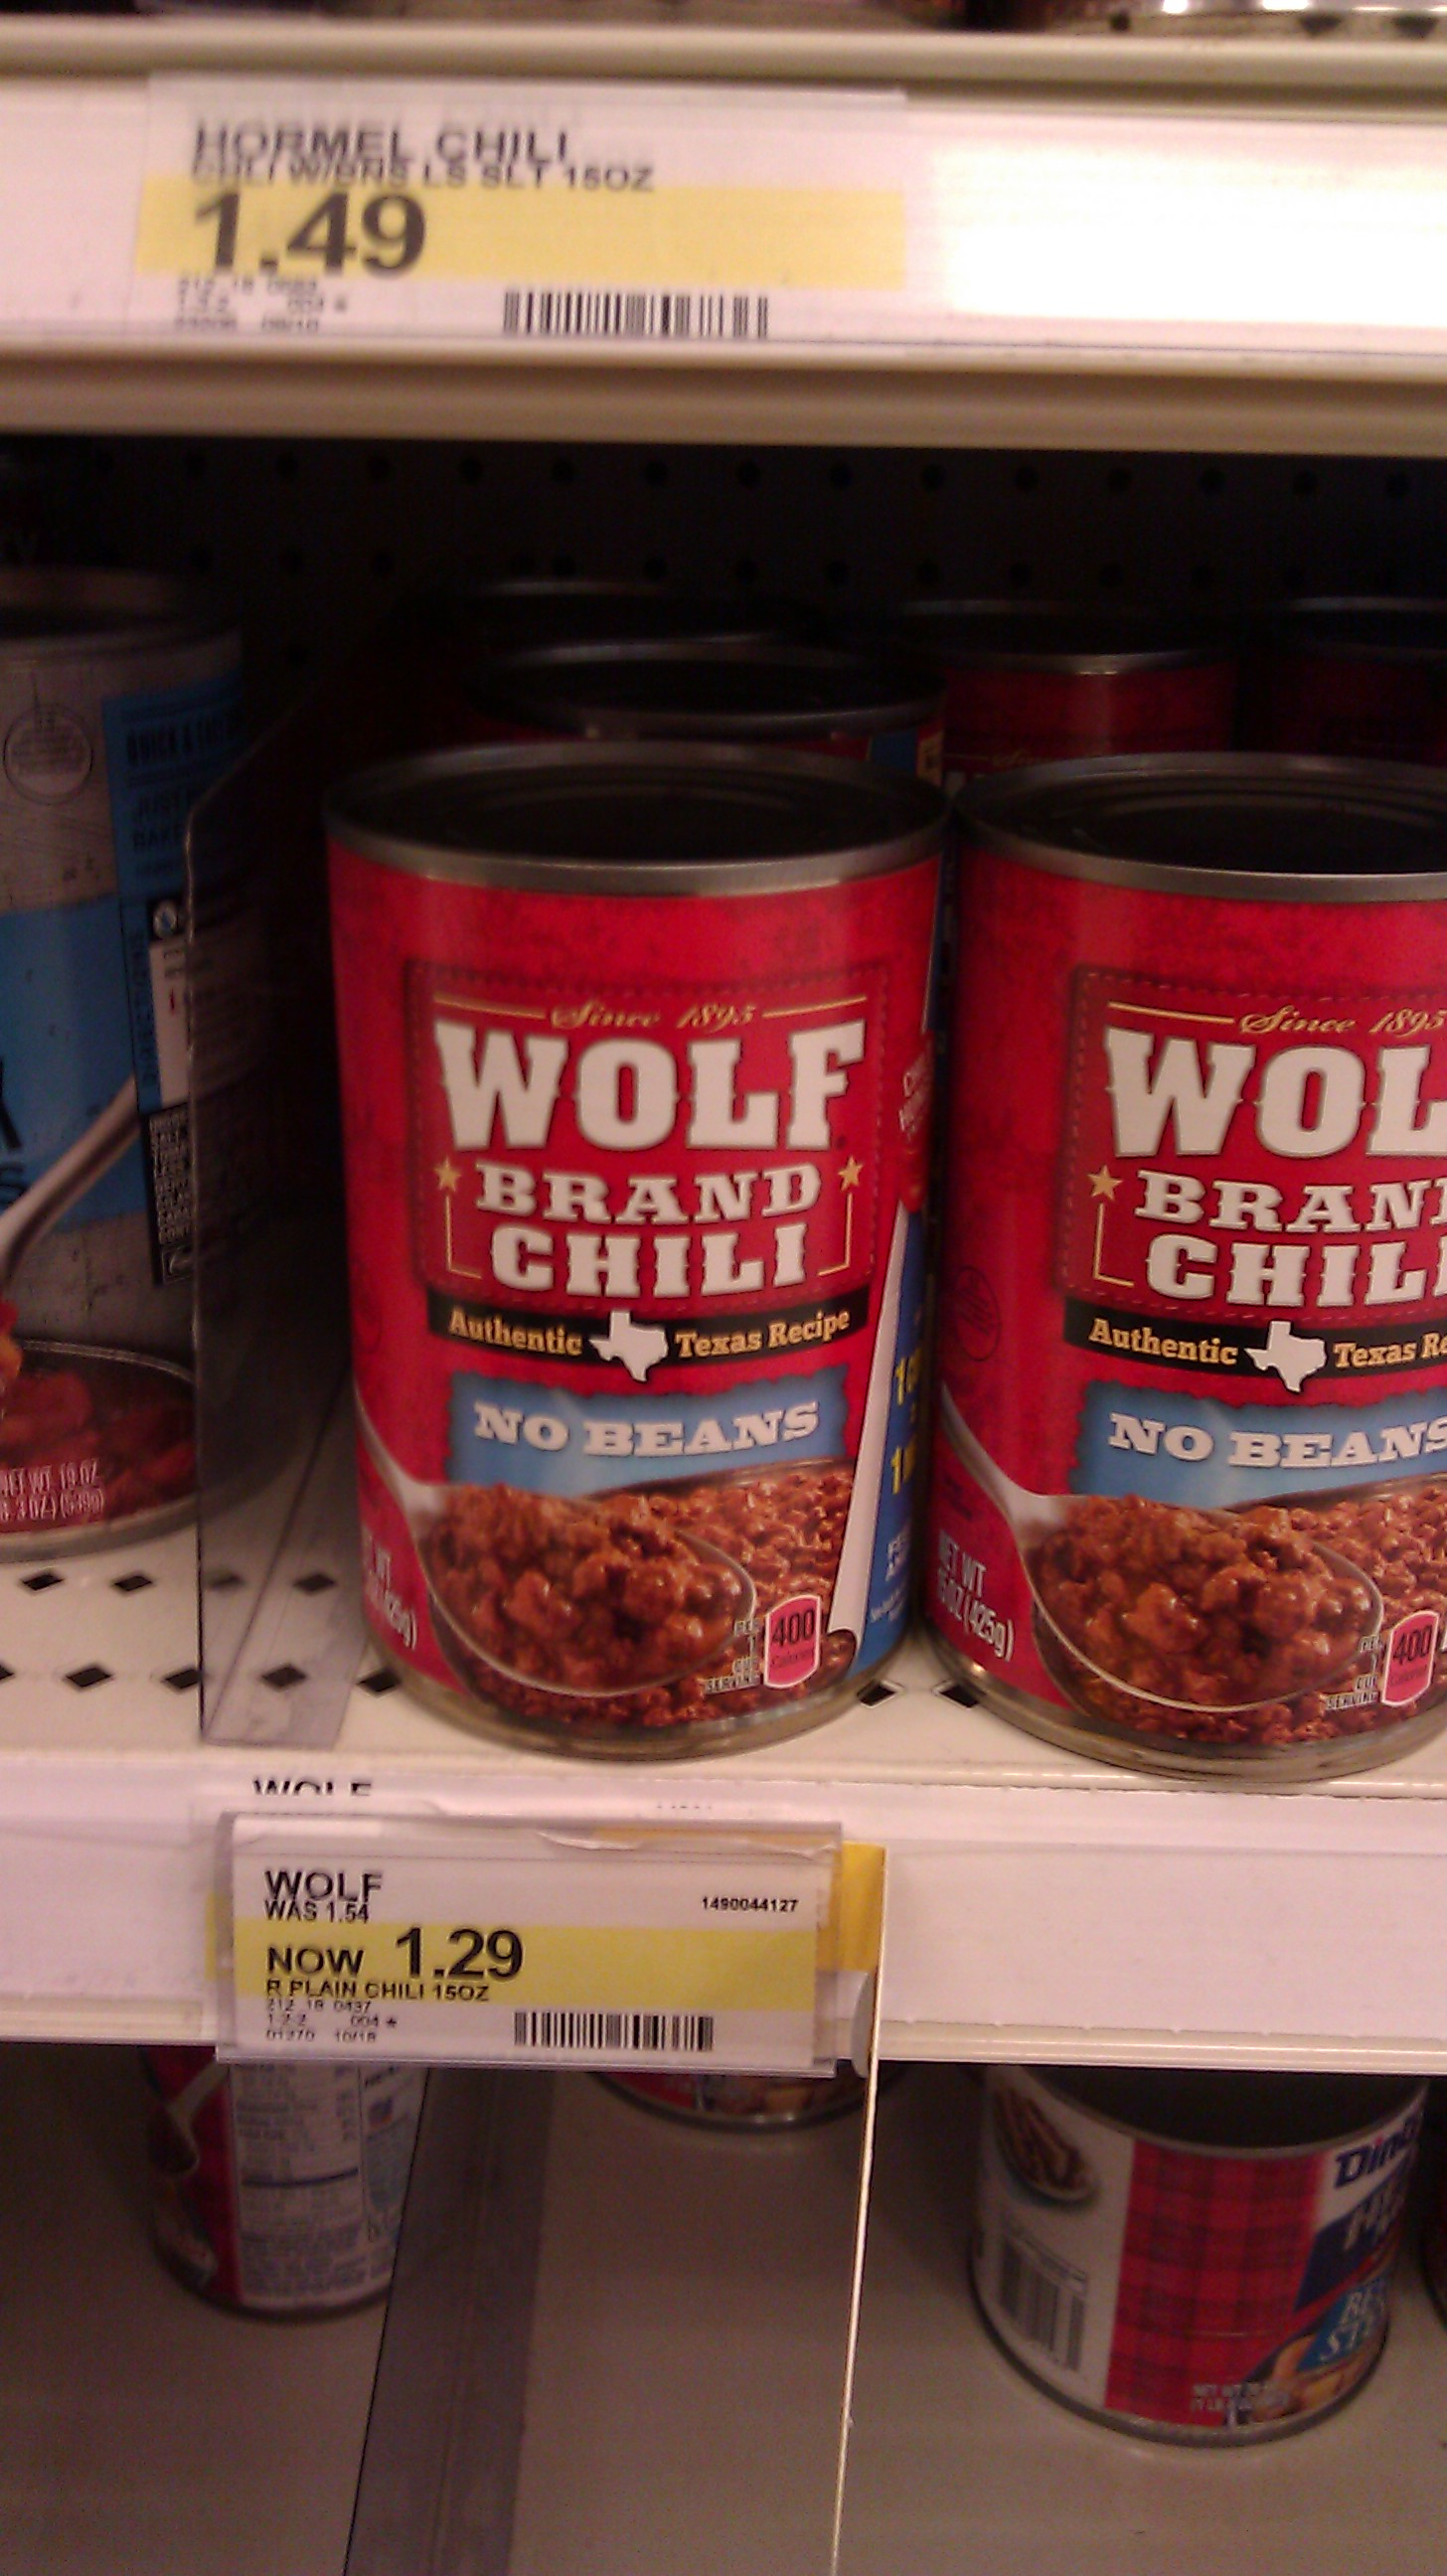 graphic about Chili Printable Coupons referred to as Wolf model chili coupon codes : Printable coupon for frozen meat